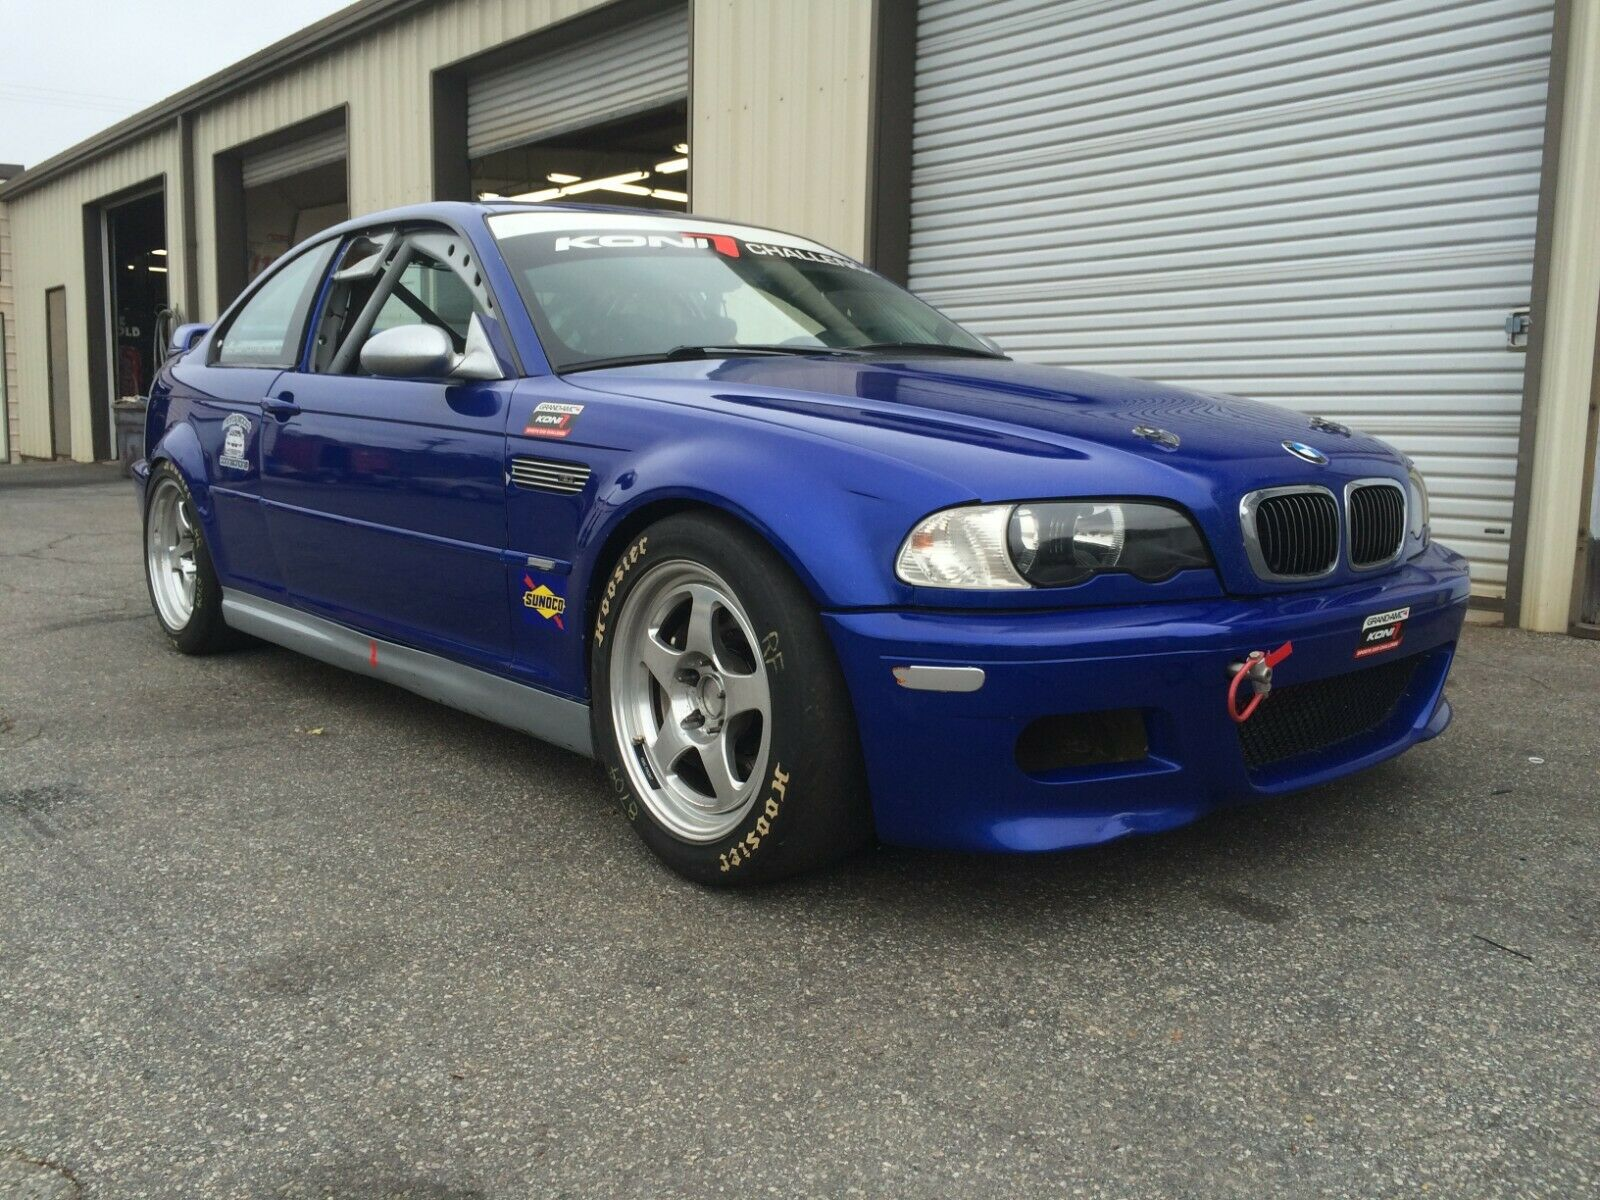 2003 BMW M3 S54 with BMW Factory Motorsport Chassis Race Car